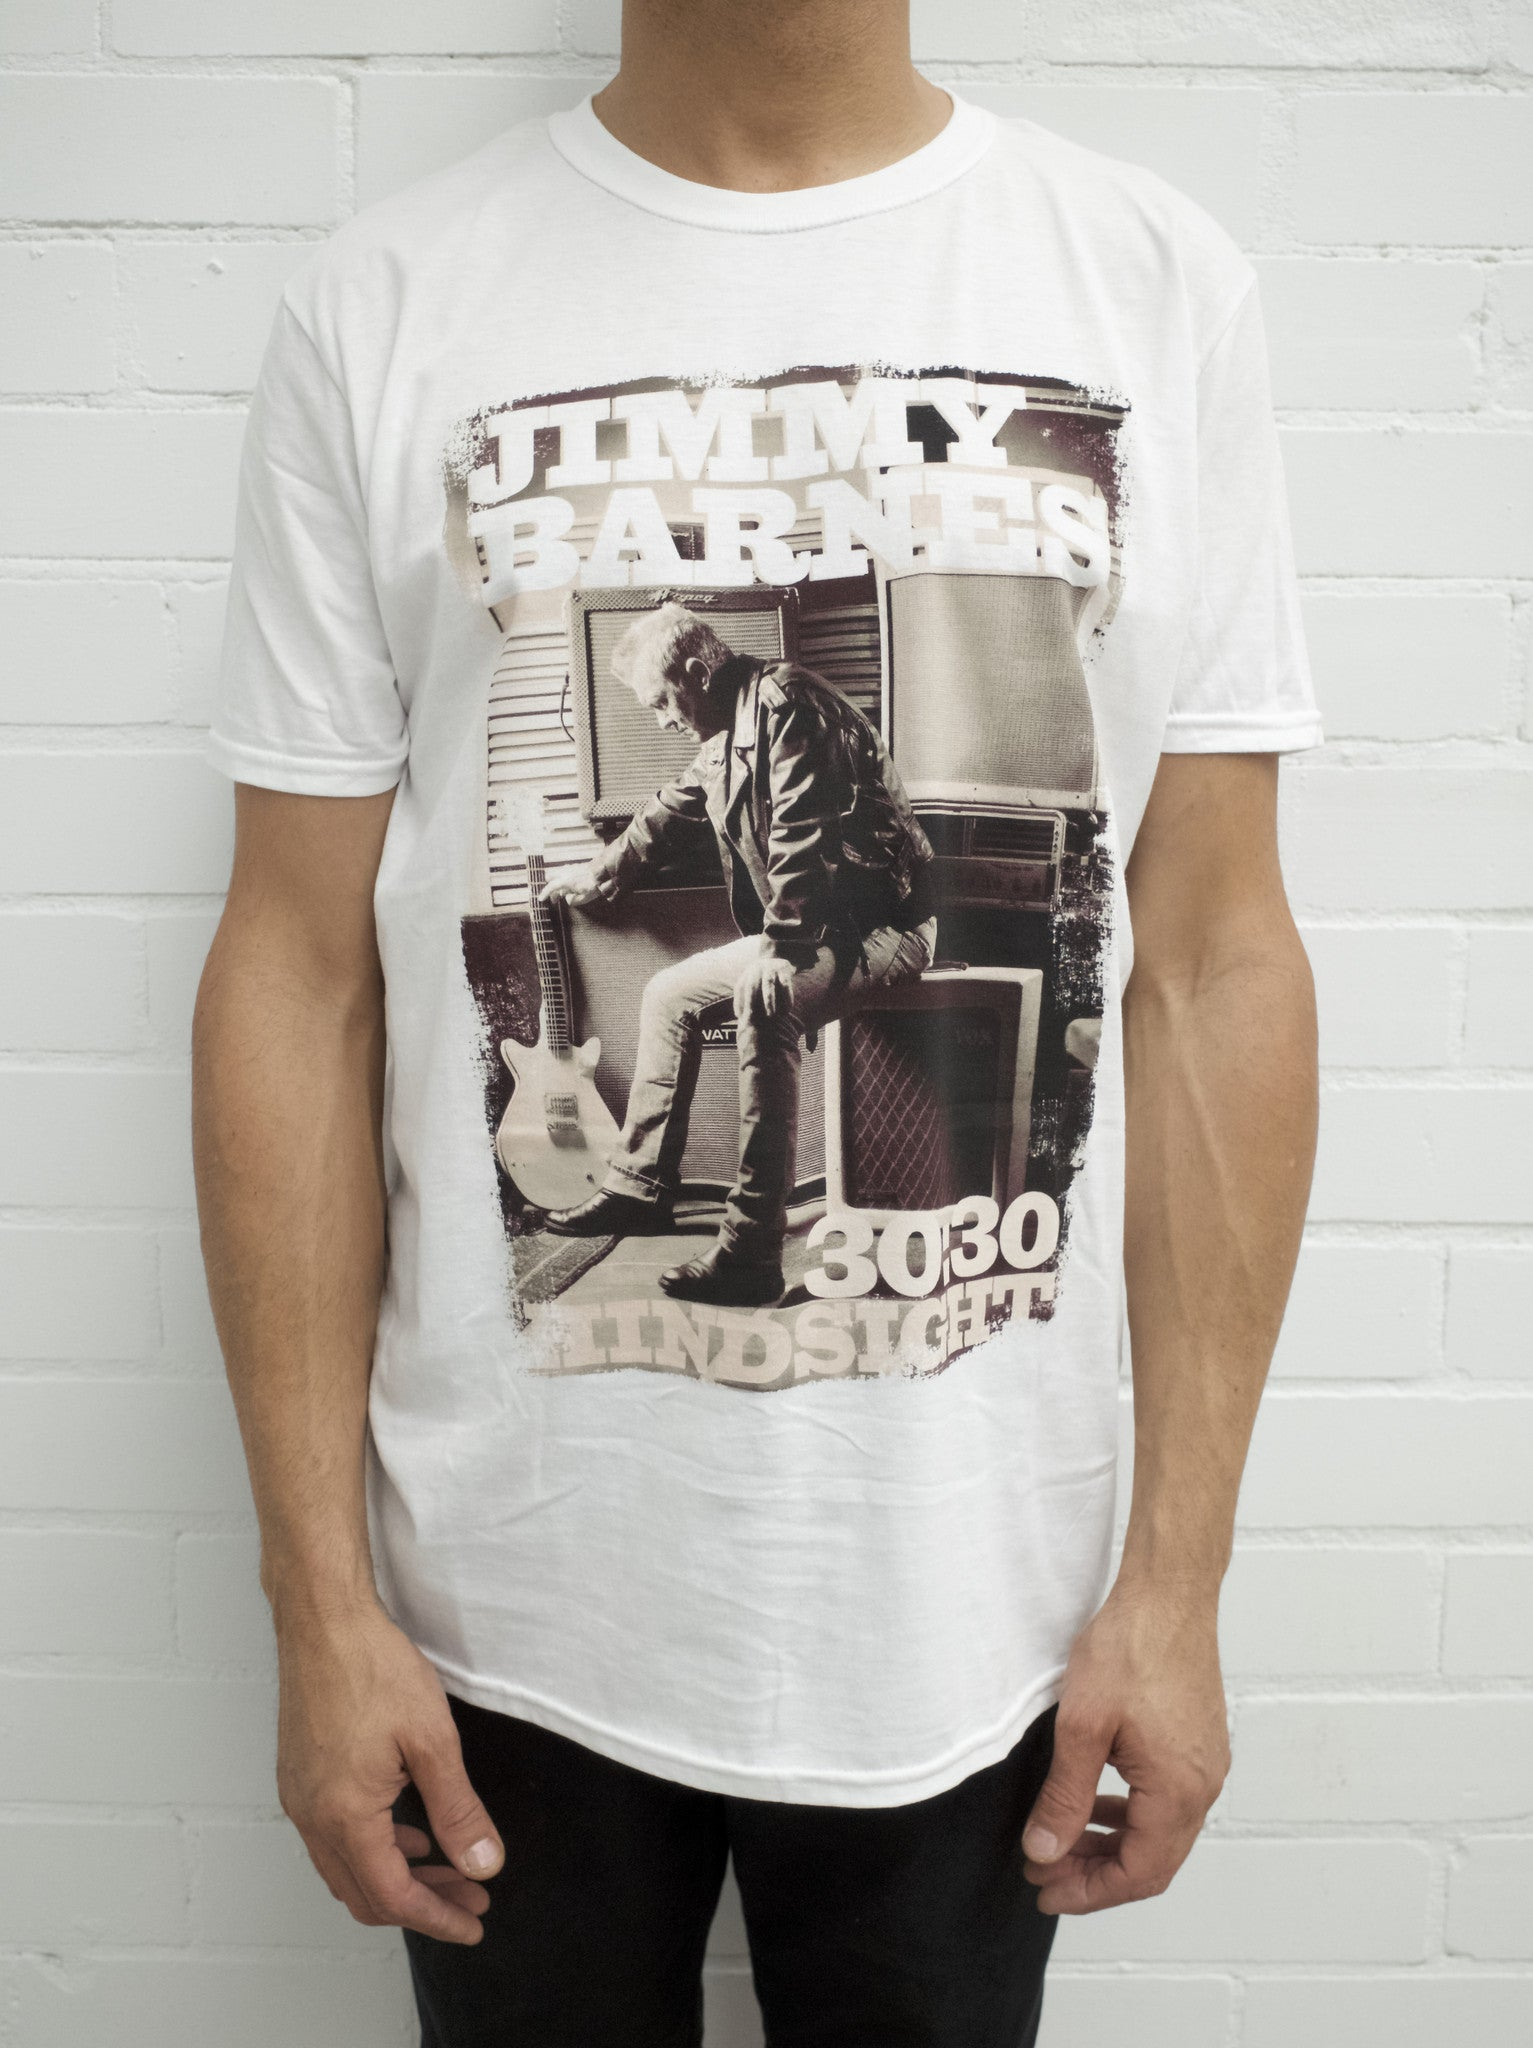 'Hindsight 30:30' Tour T-shirt